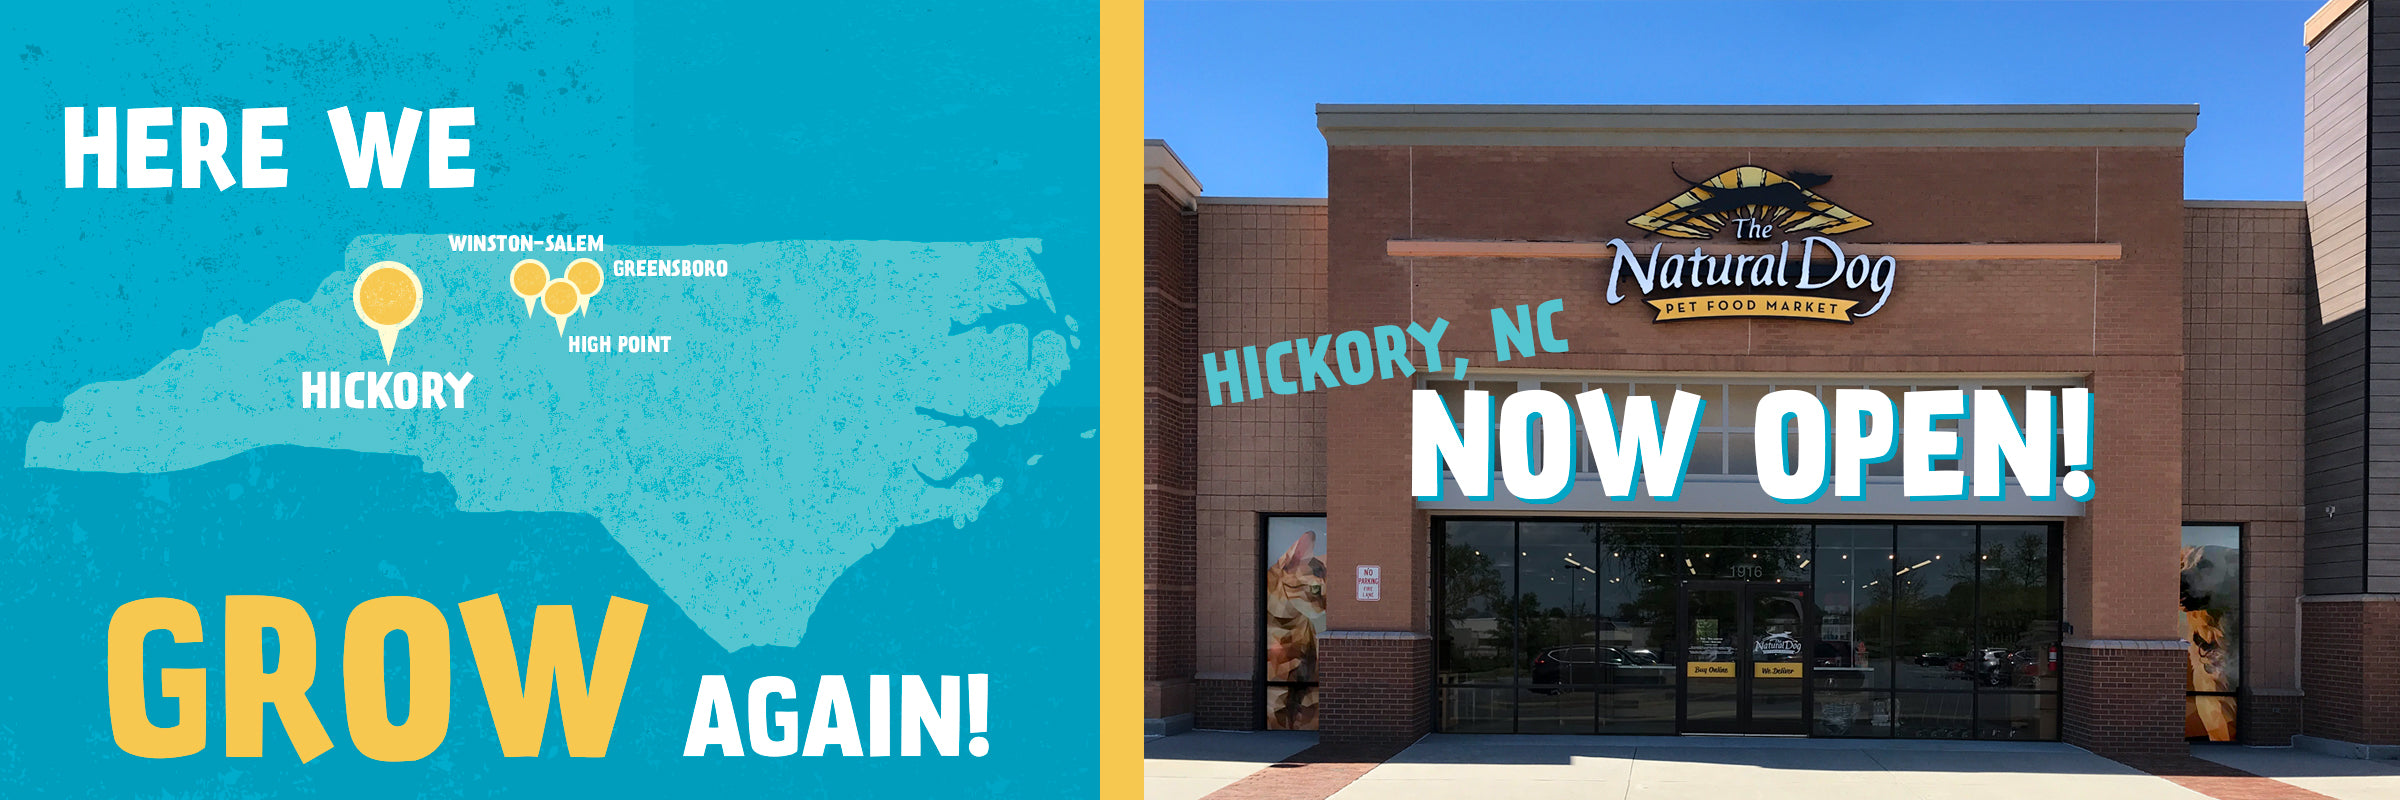 hickory opening